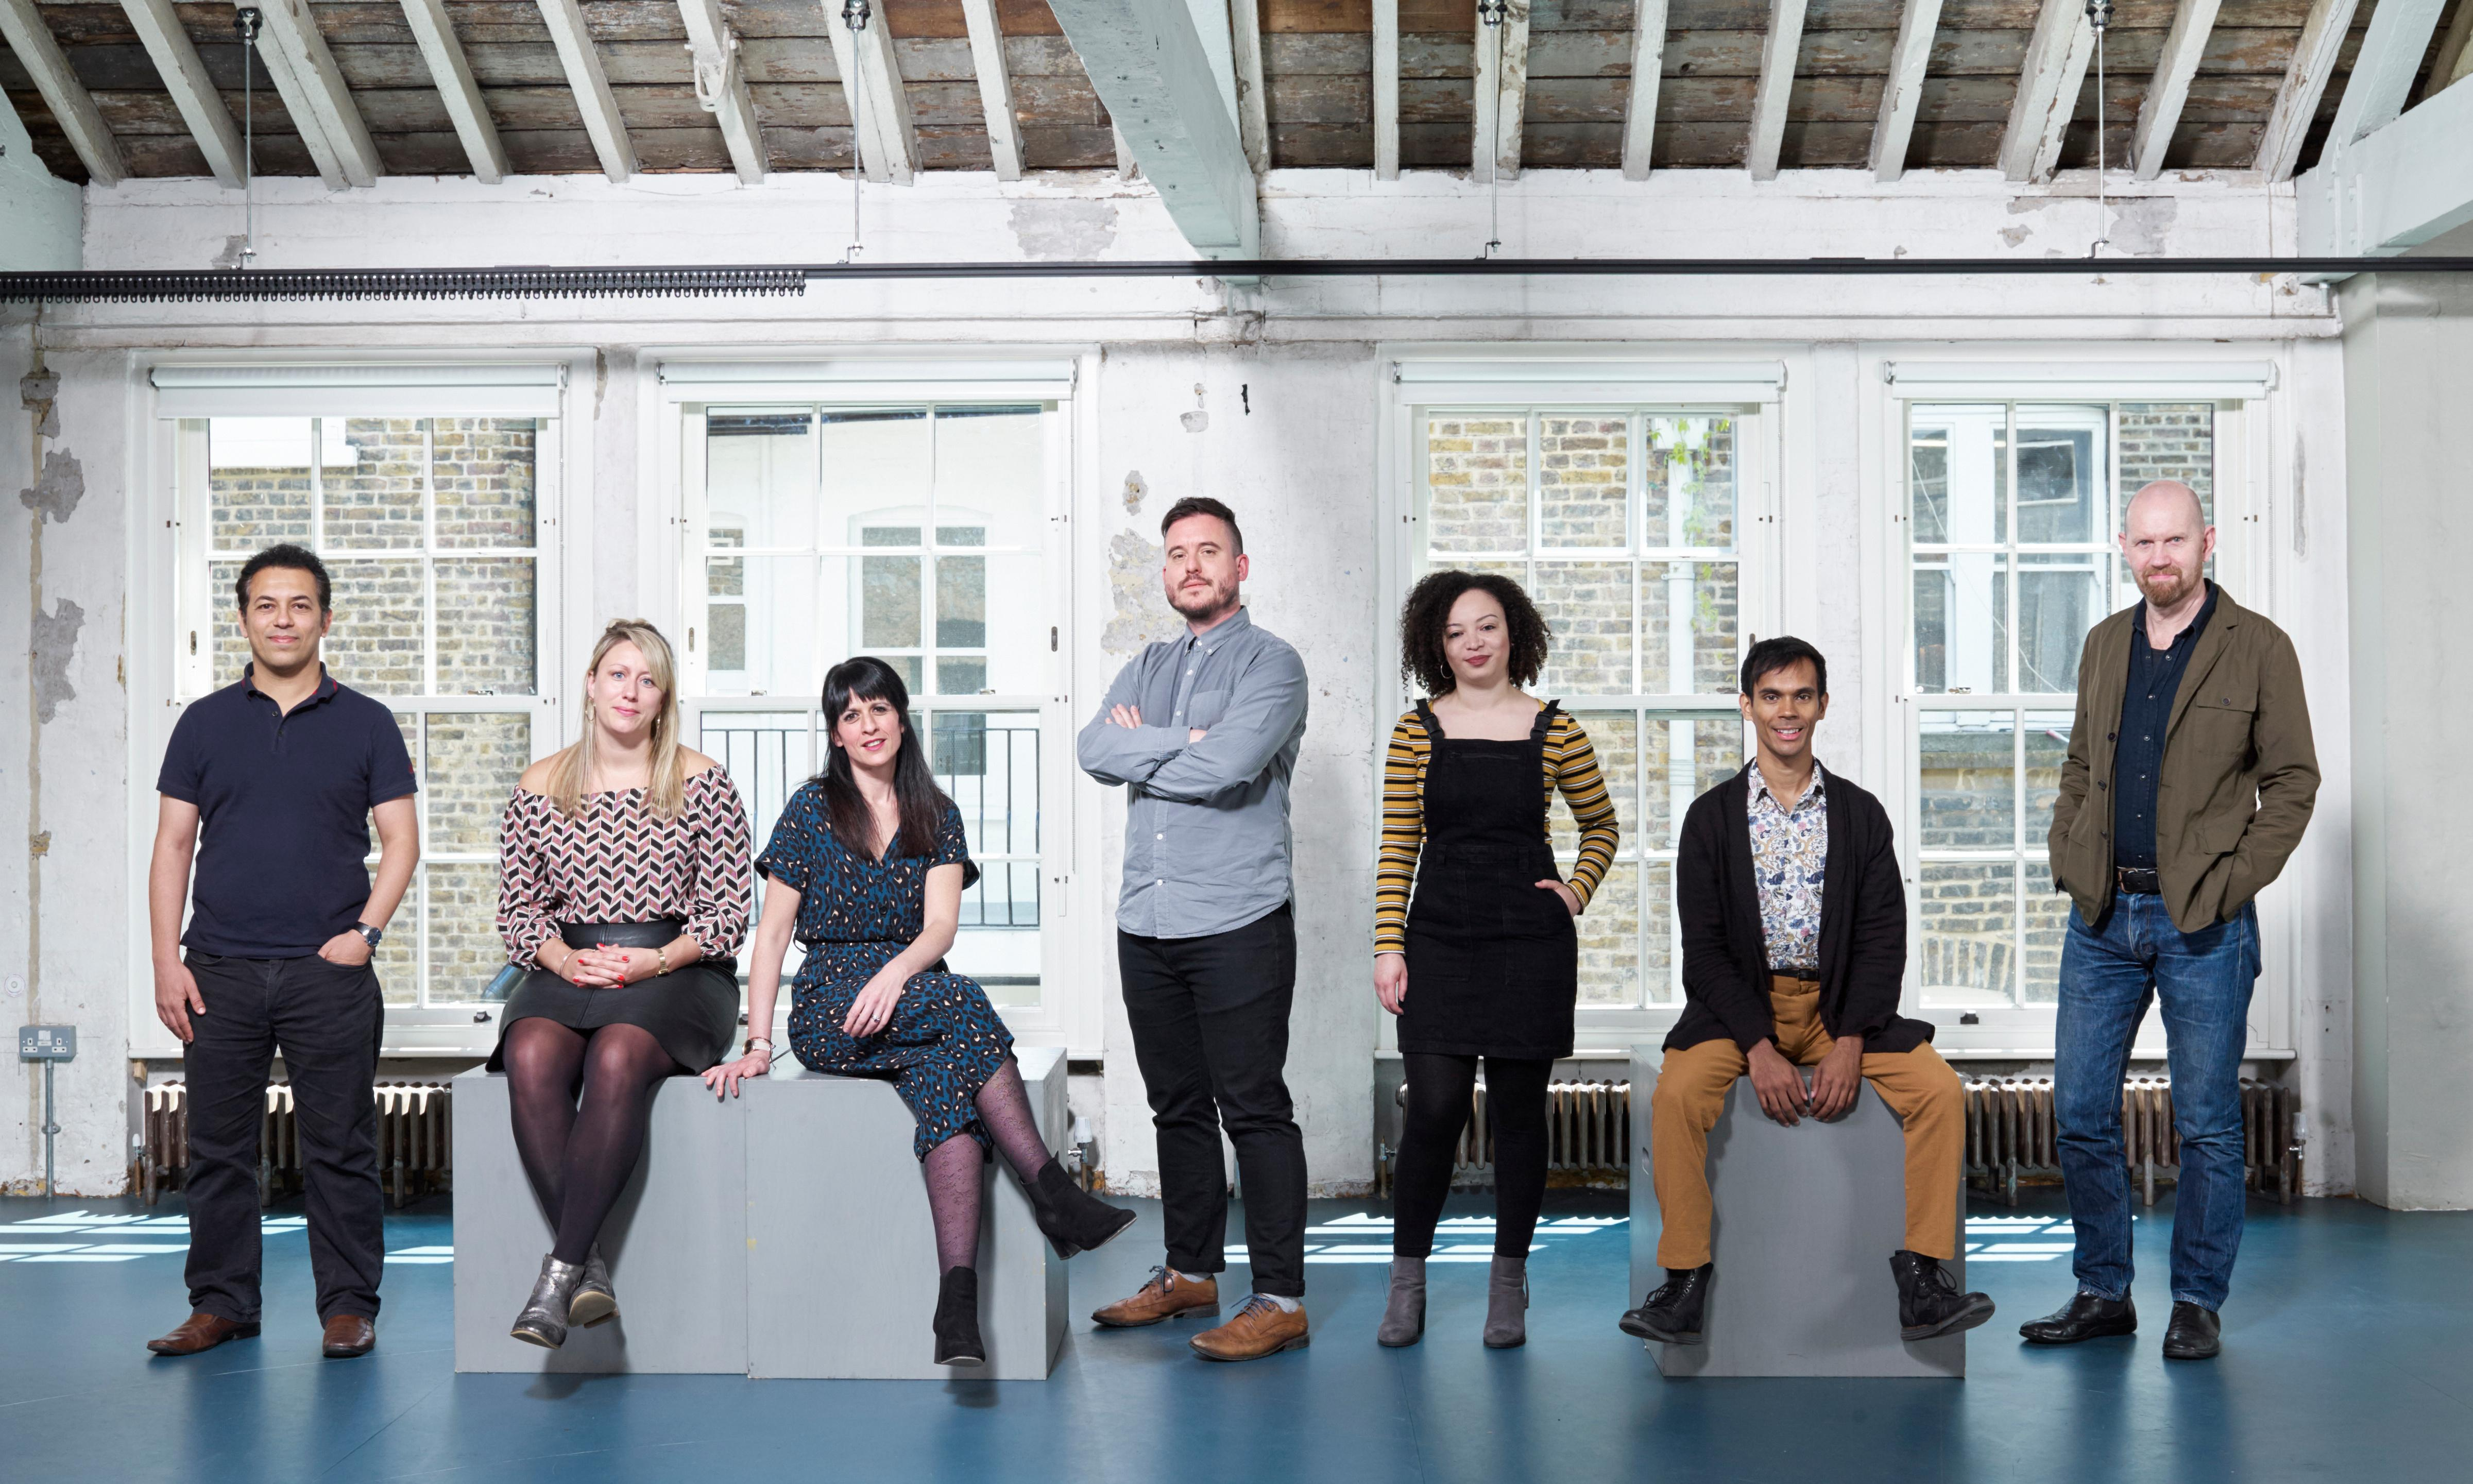 All change! Meet the new artistic directors shaking up British theatre